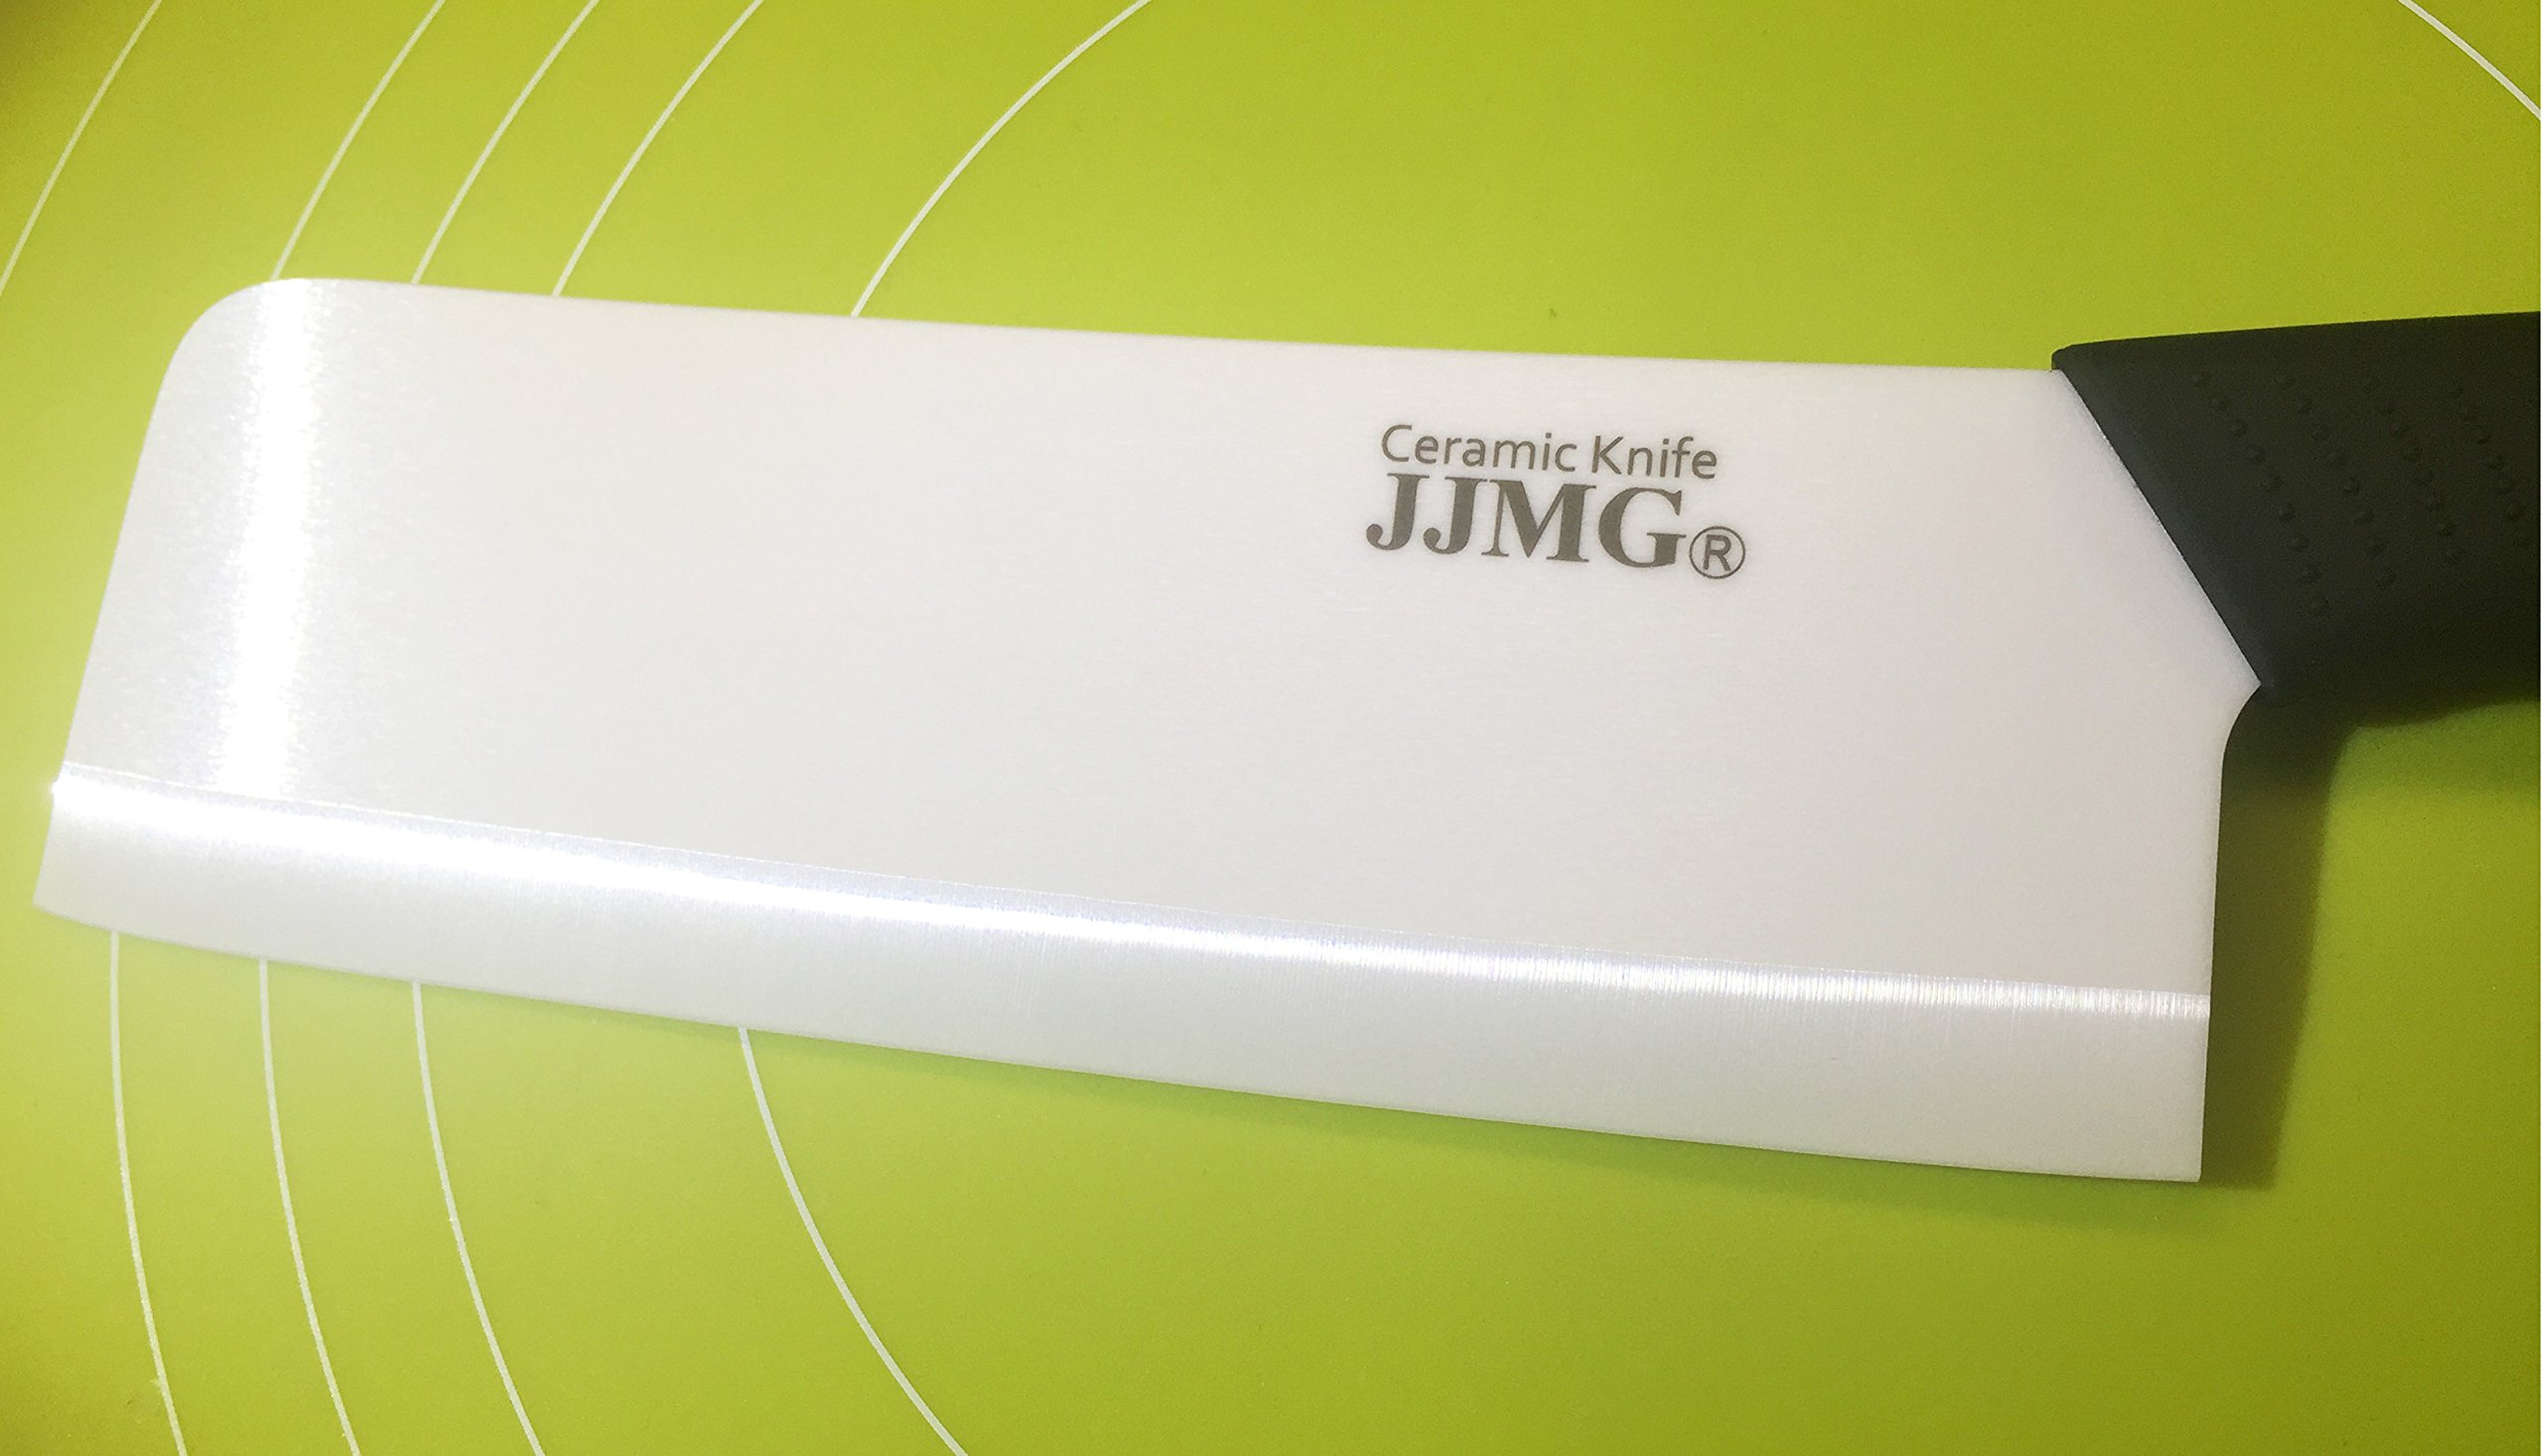 JJMG Ceramic Meat Cleaver Knife Sharp Durable Twice Thicker than Leading Brands non-slip grip Handle Zirconium Blade Cut… 3 SHARP & DURABLE LONG LASTING SHARPNESS: Perfect for Cutting Slicing Mincing & Dicing Meat Cheese and Vegetables. Made of High Quality Ceramic, 60 times more Wear-Resistant than Metal knifes. Easy to Maintain, Holds its Sharp Edge. The knifes blades are made by Zirconium, only diamonds are harder, and stays sharp 15 times longer. NO RUST & BPA-FREE: Rust Resistant, Anti-acid and Alkali Material, Non-toxic, No Contamination, No Metal smell, Easy to Use. will retain its original sharpness up to 15 times longer than steel blades. You will never need sharpening any more! NO OXIDATION: Keep your vegetables free from oxidation when cutting with these ceramic knifes. Keep your vegetables meat & food fresh for a longer period of time.